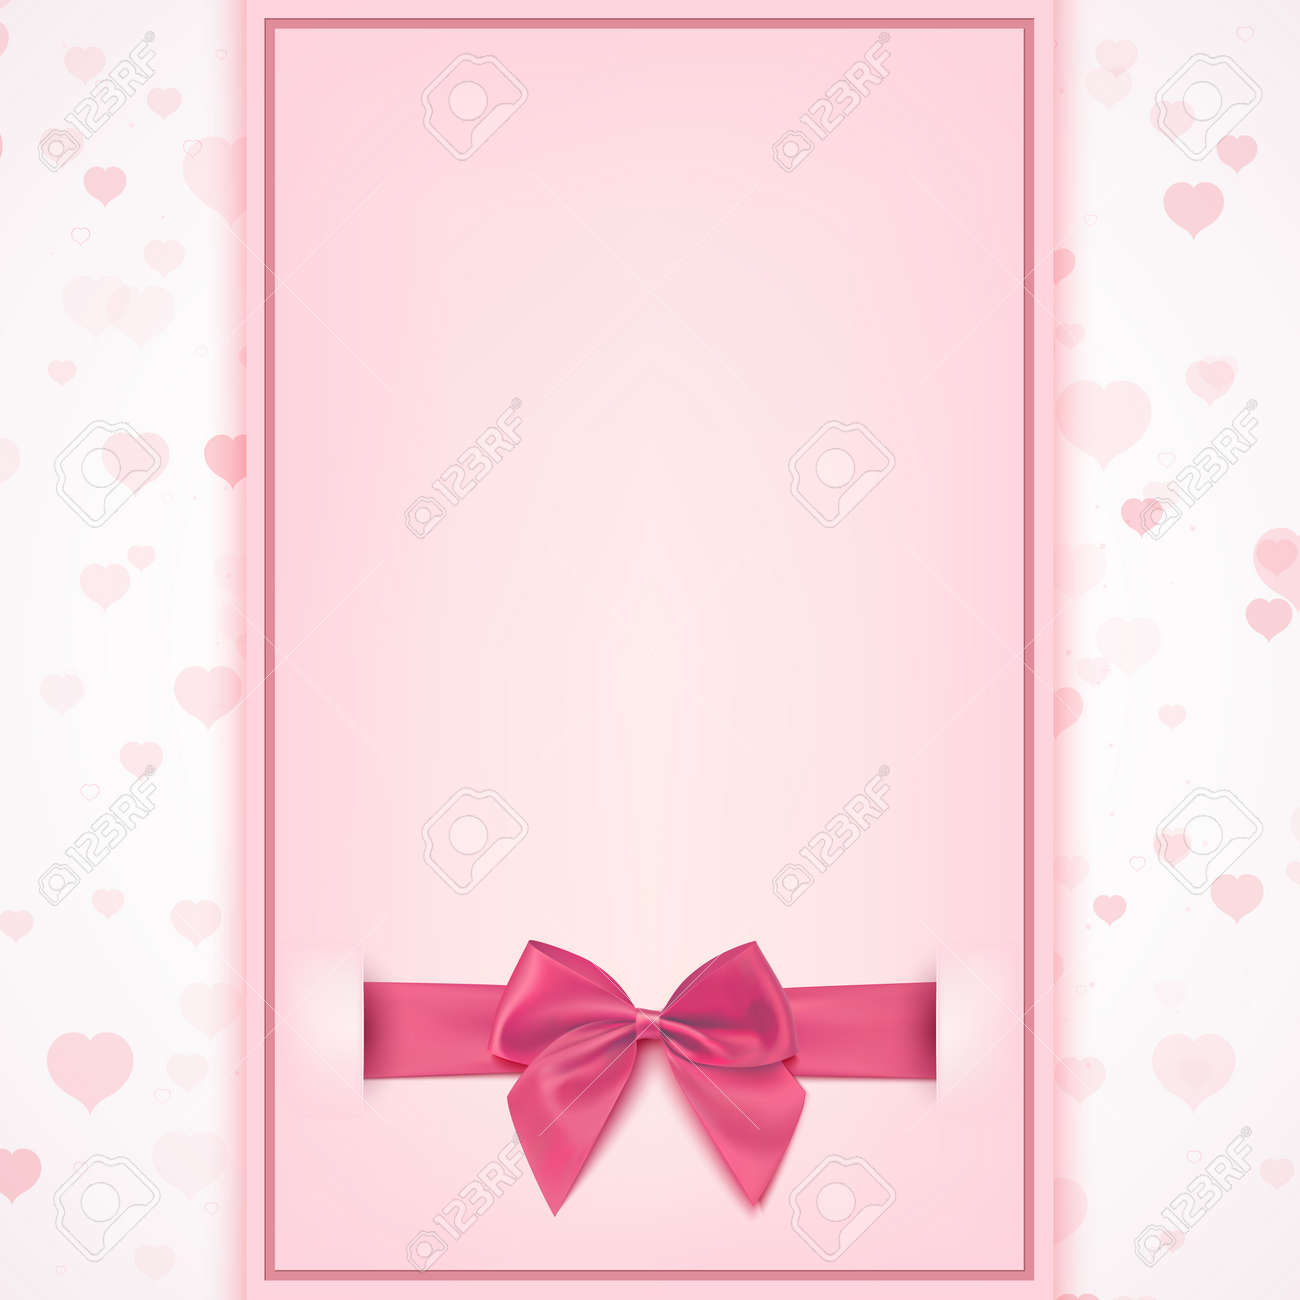 Blank greeting card template for baby girl shower celebration, birthday, or baby girl announcement card, Valentines day, Womens day, Mothers day. Vector illustration. - 53357246